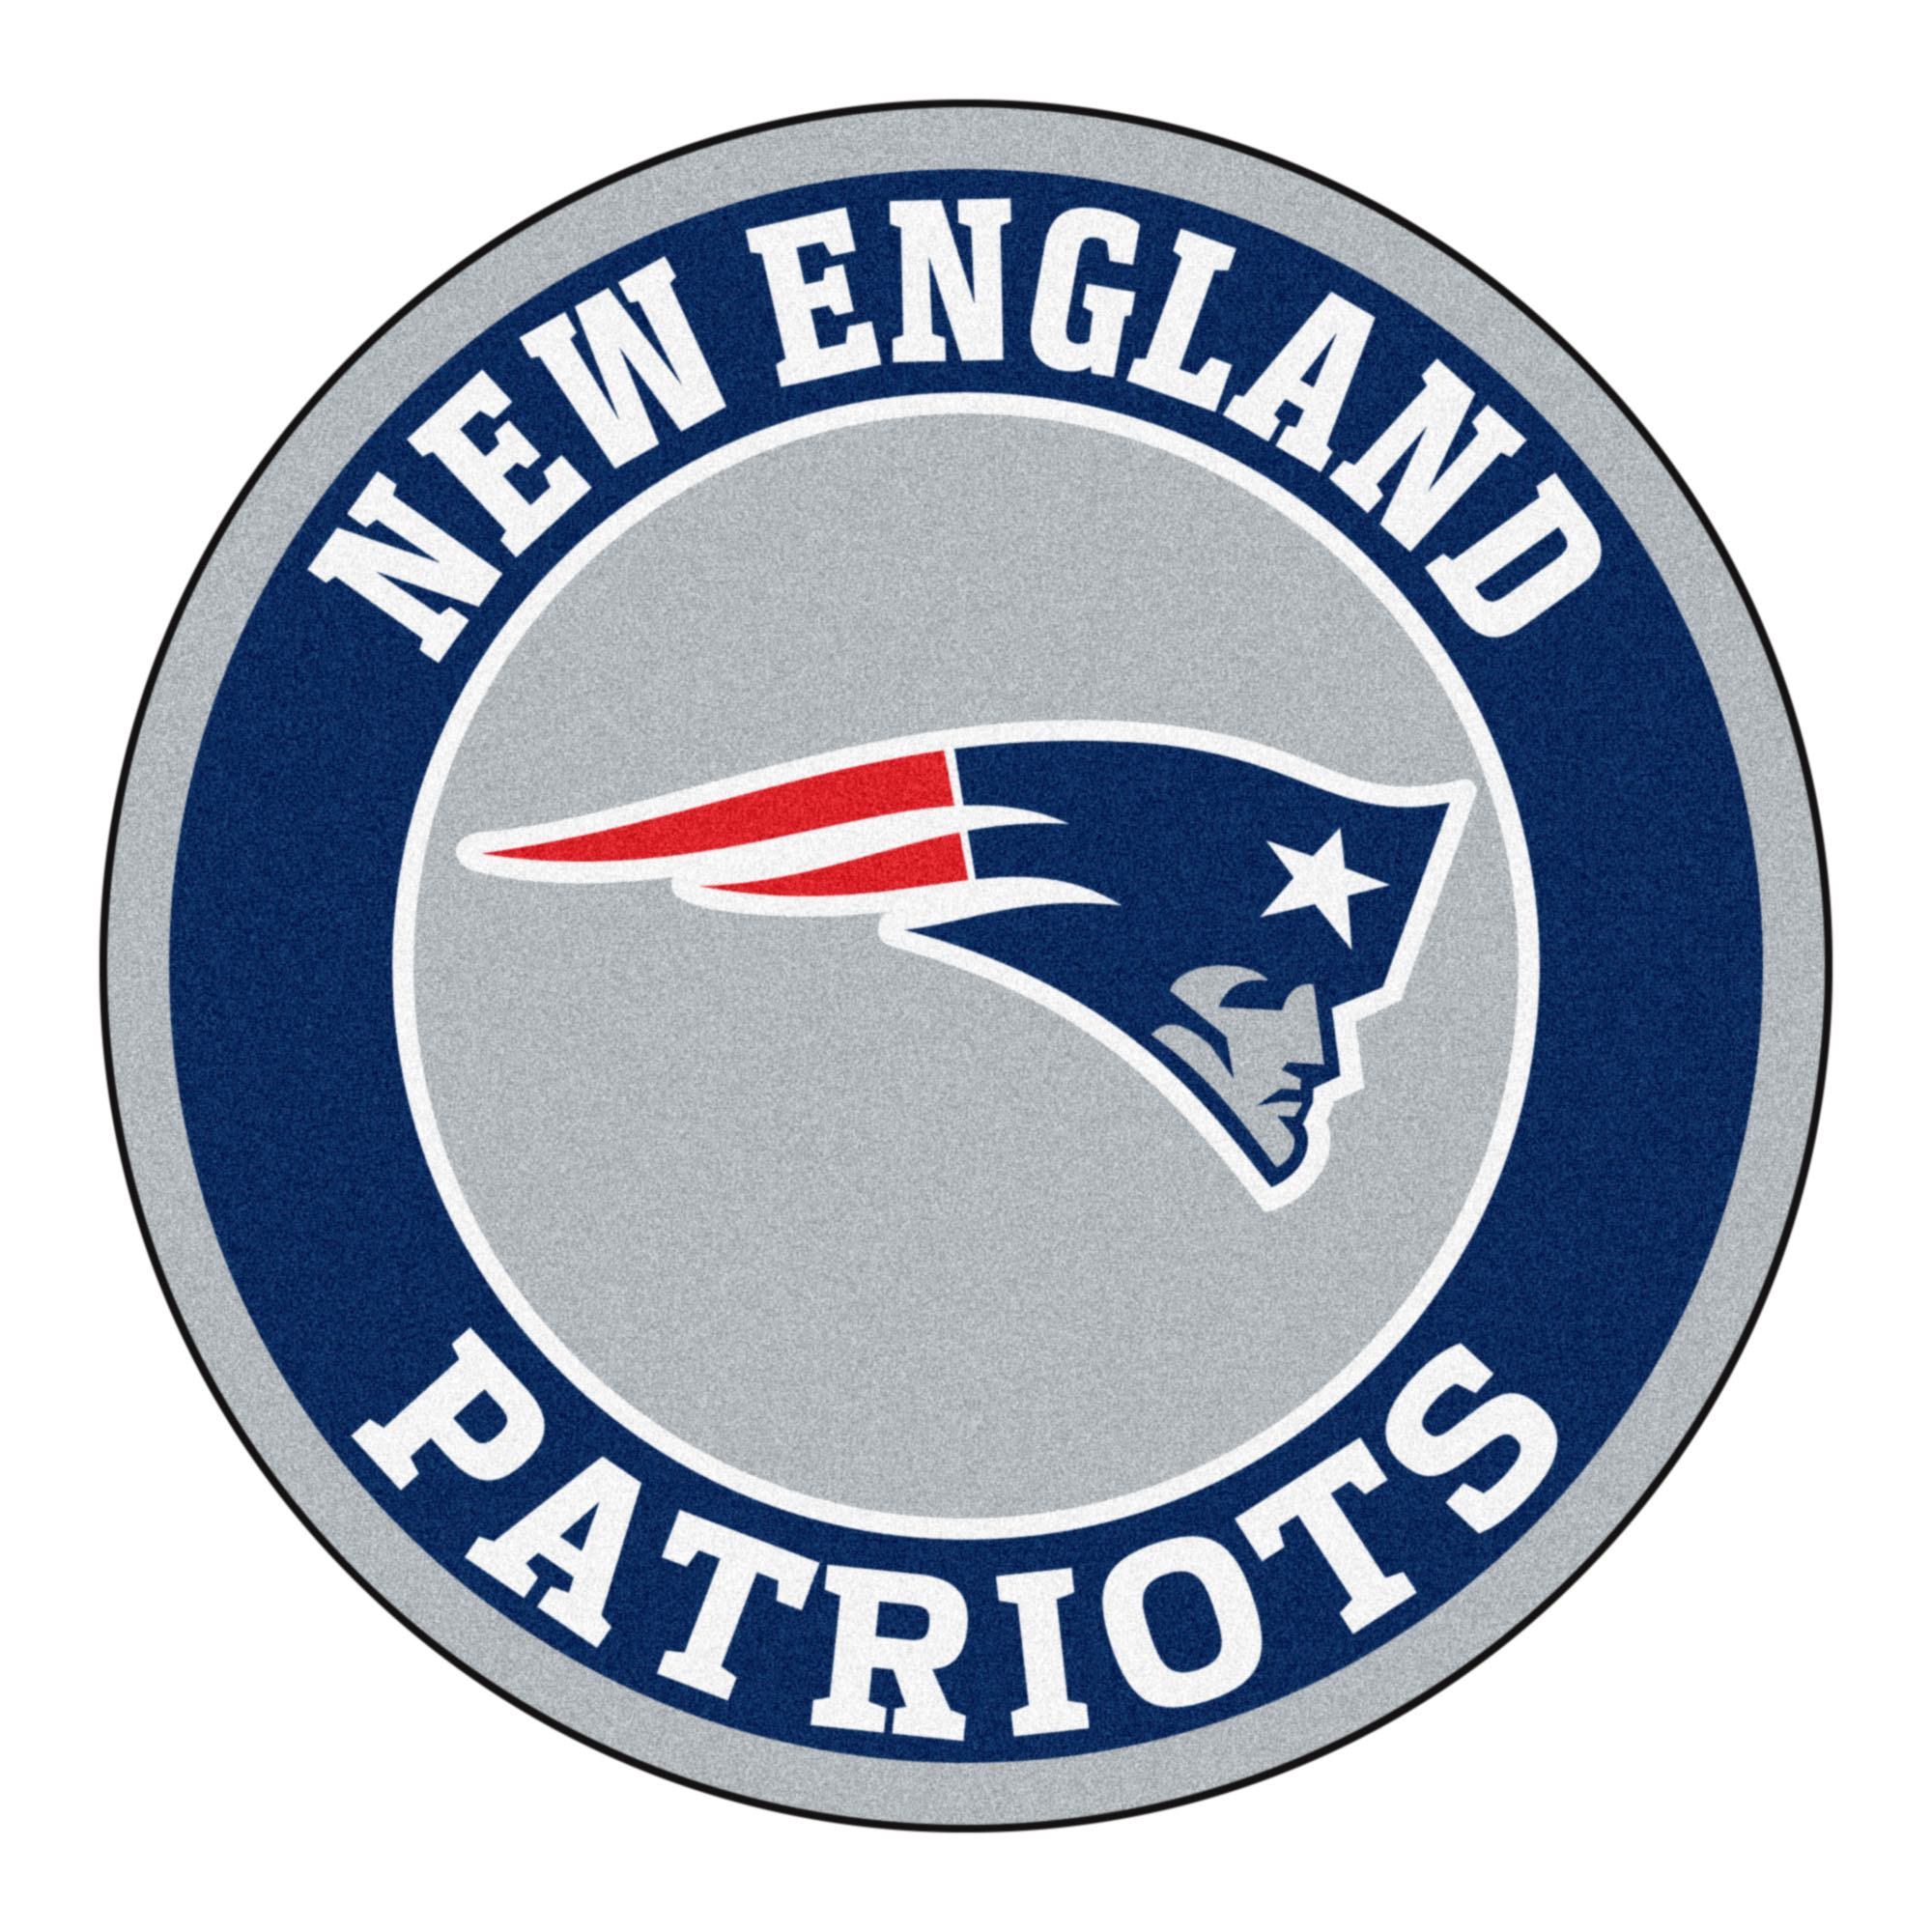 New England Patriots wallpapers, Sports, HQ New England ...